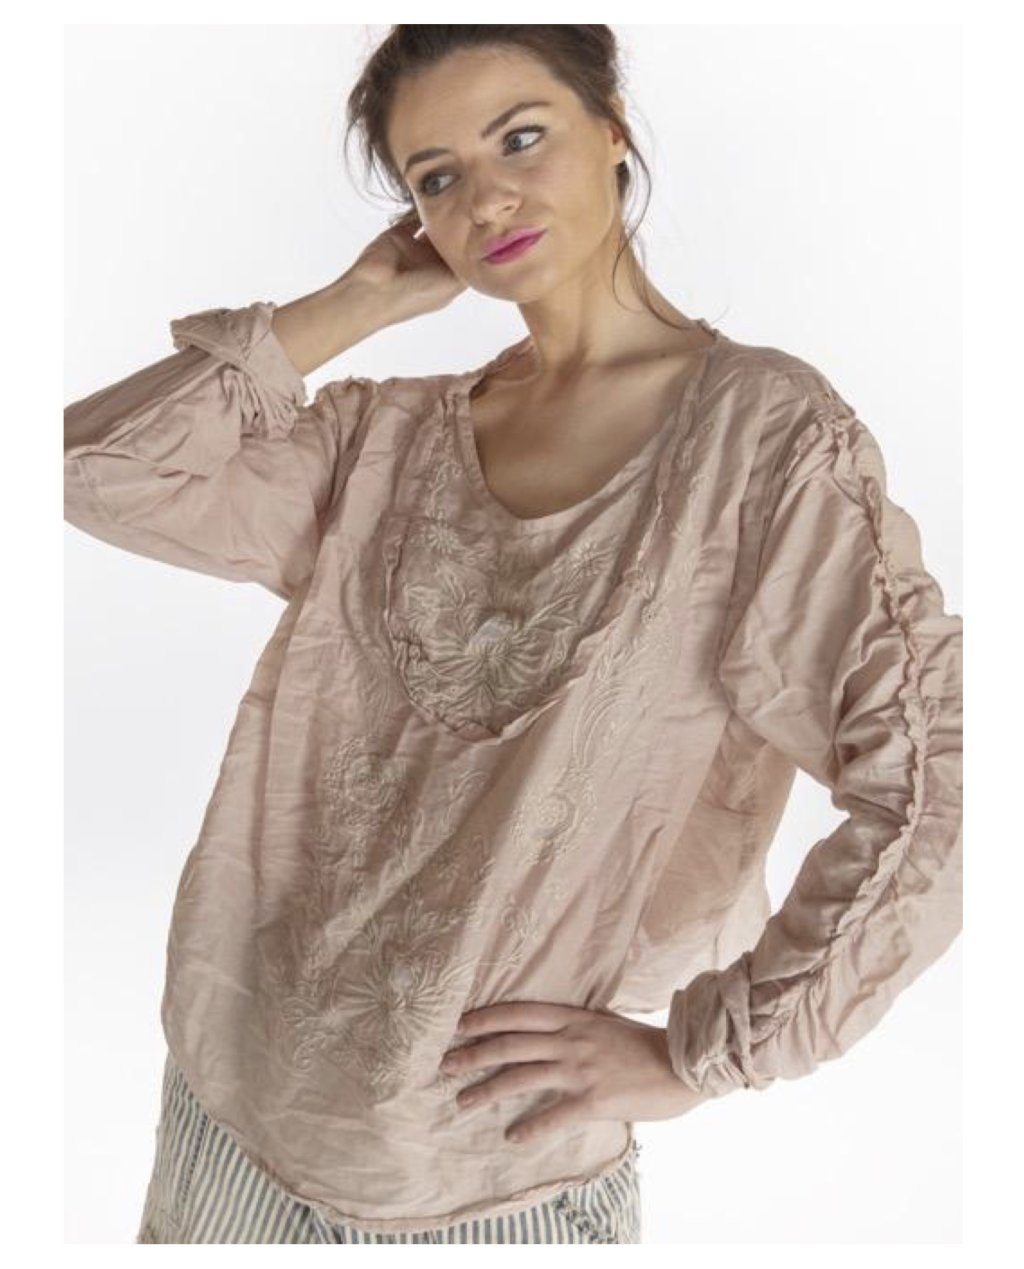 Magnolia Pearl   Into the Groove Blouse   Lilac